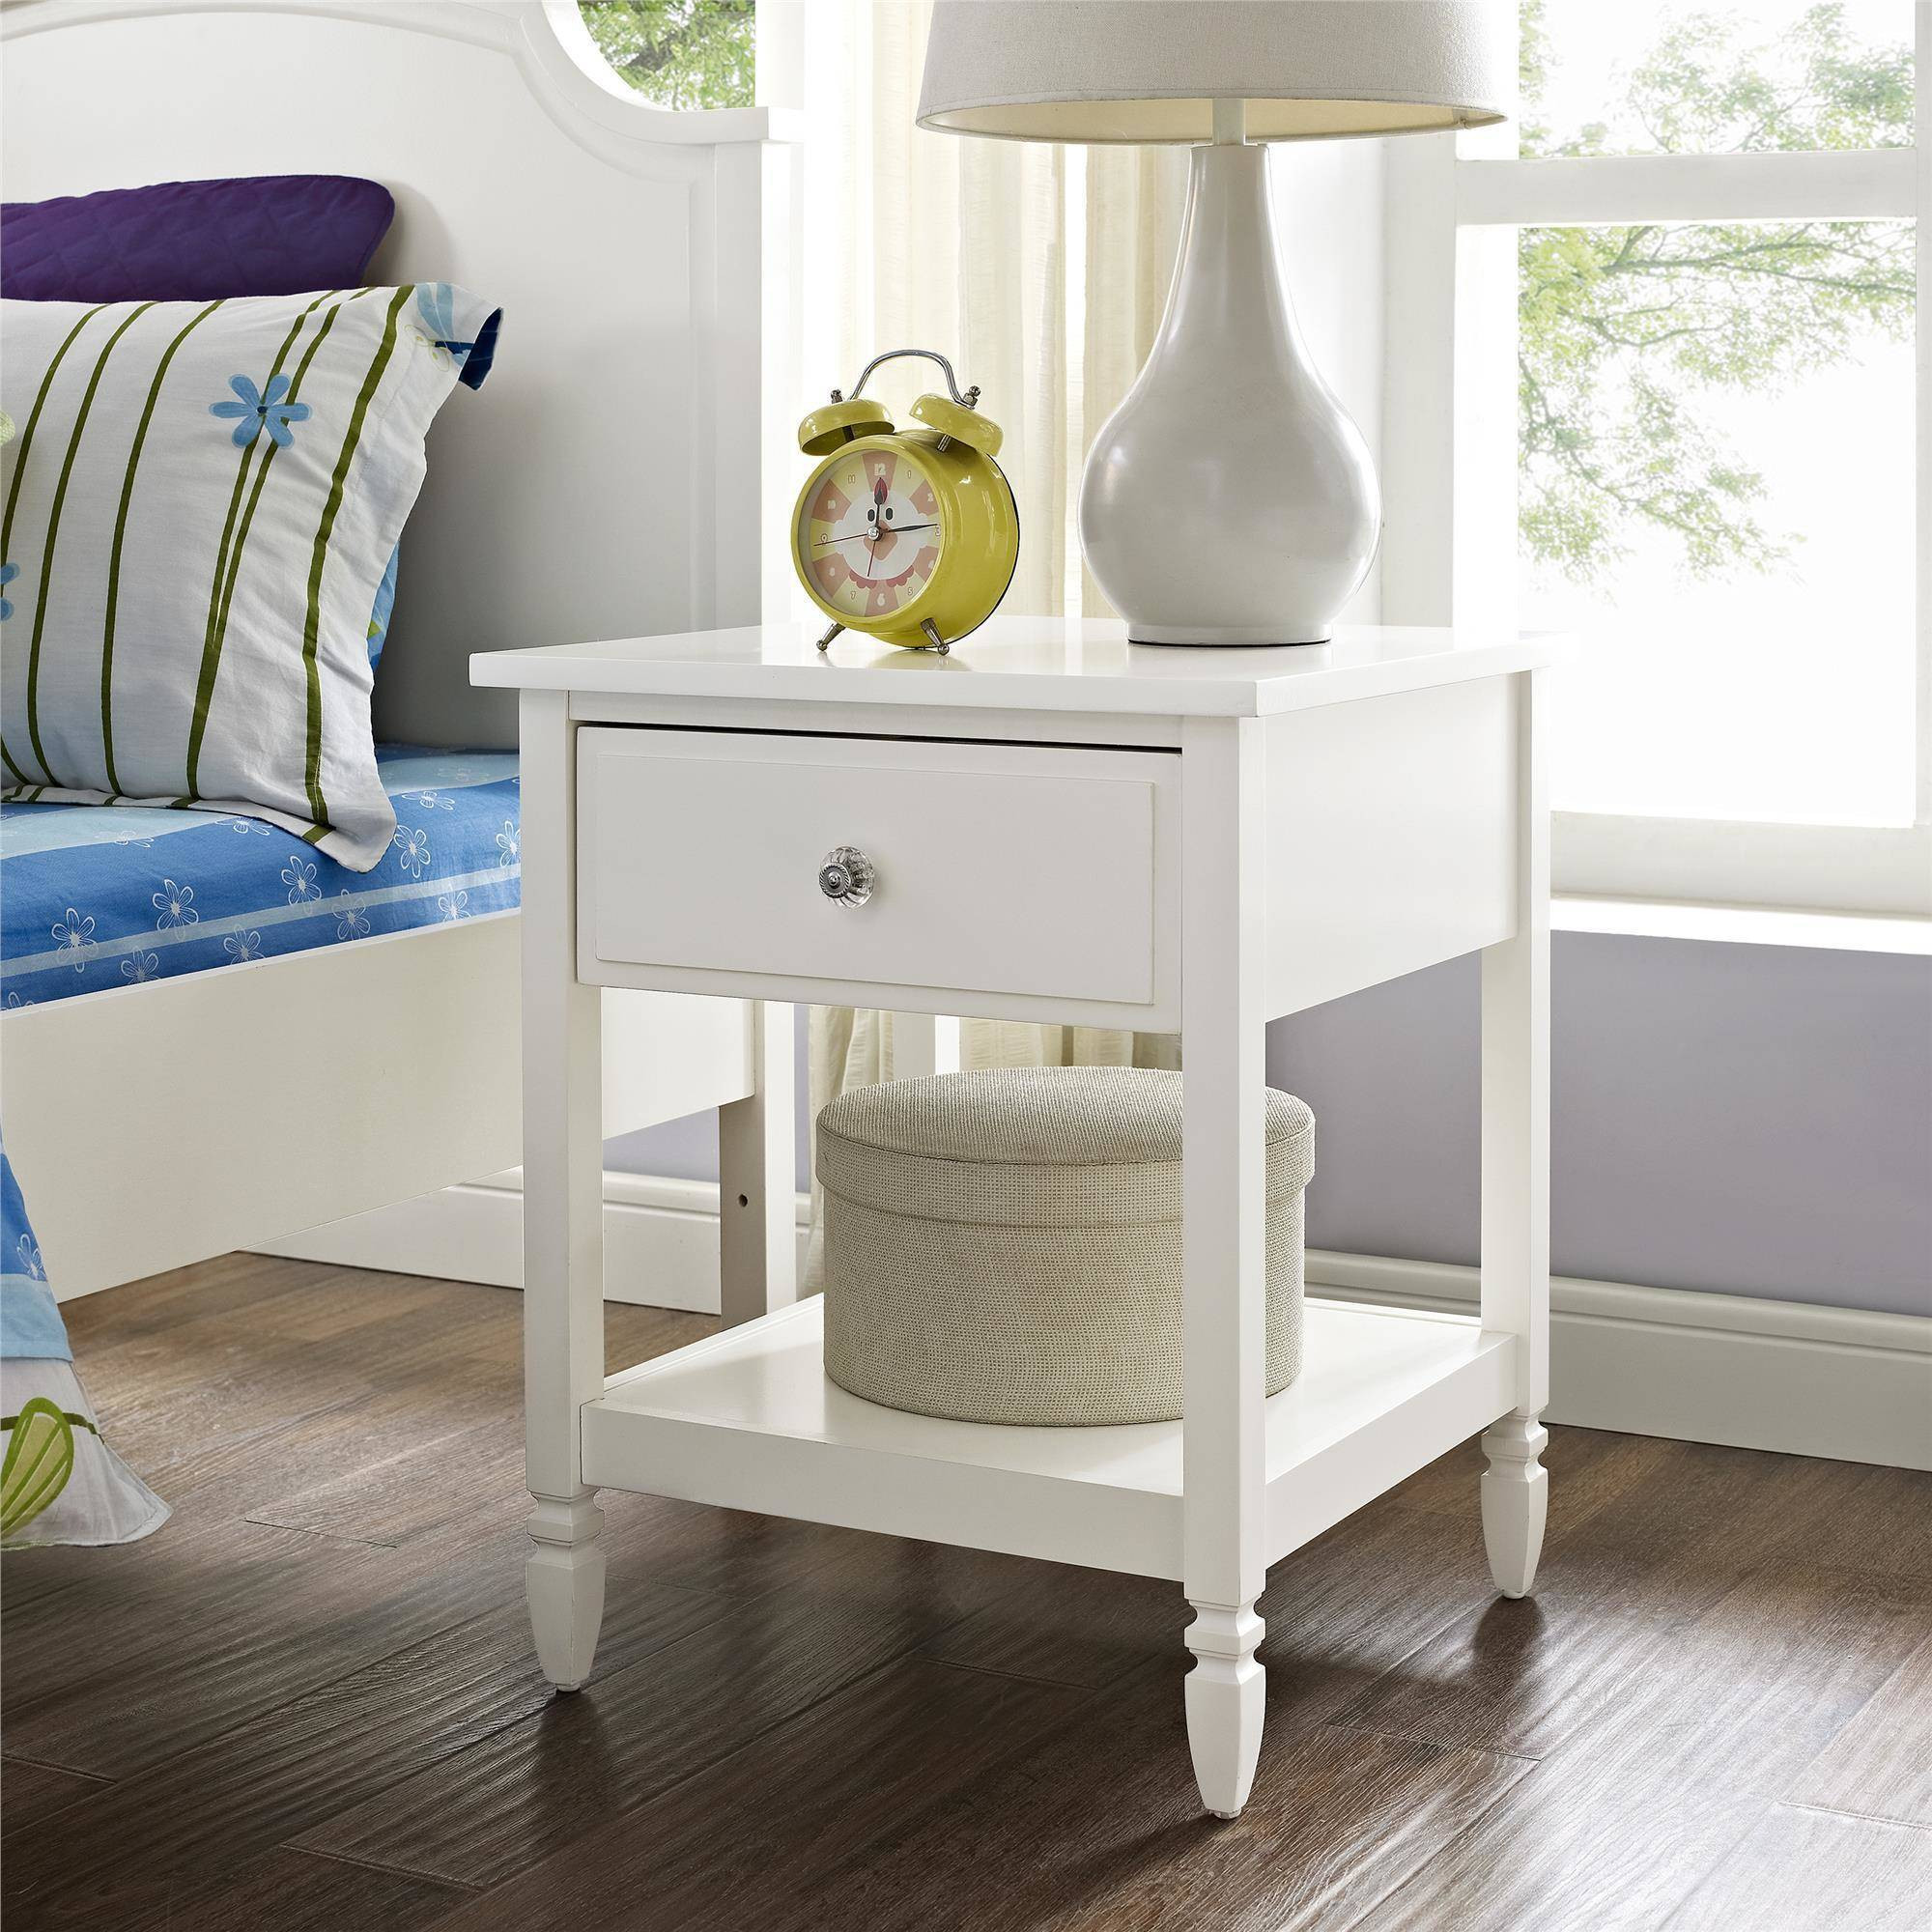 Best ideas about Walmart Bedroom Sets . Save or Pin Better Homes and Gardens Bedroom Furniture Walmart Now.